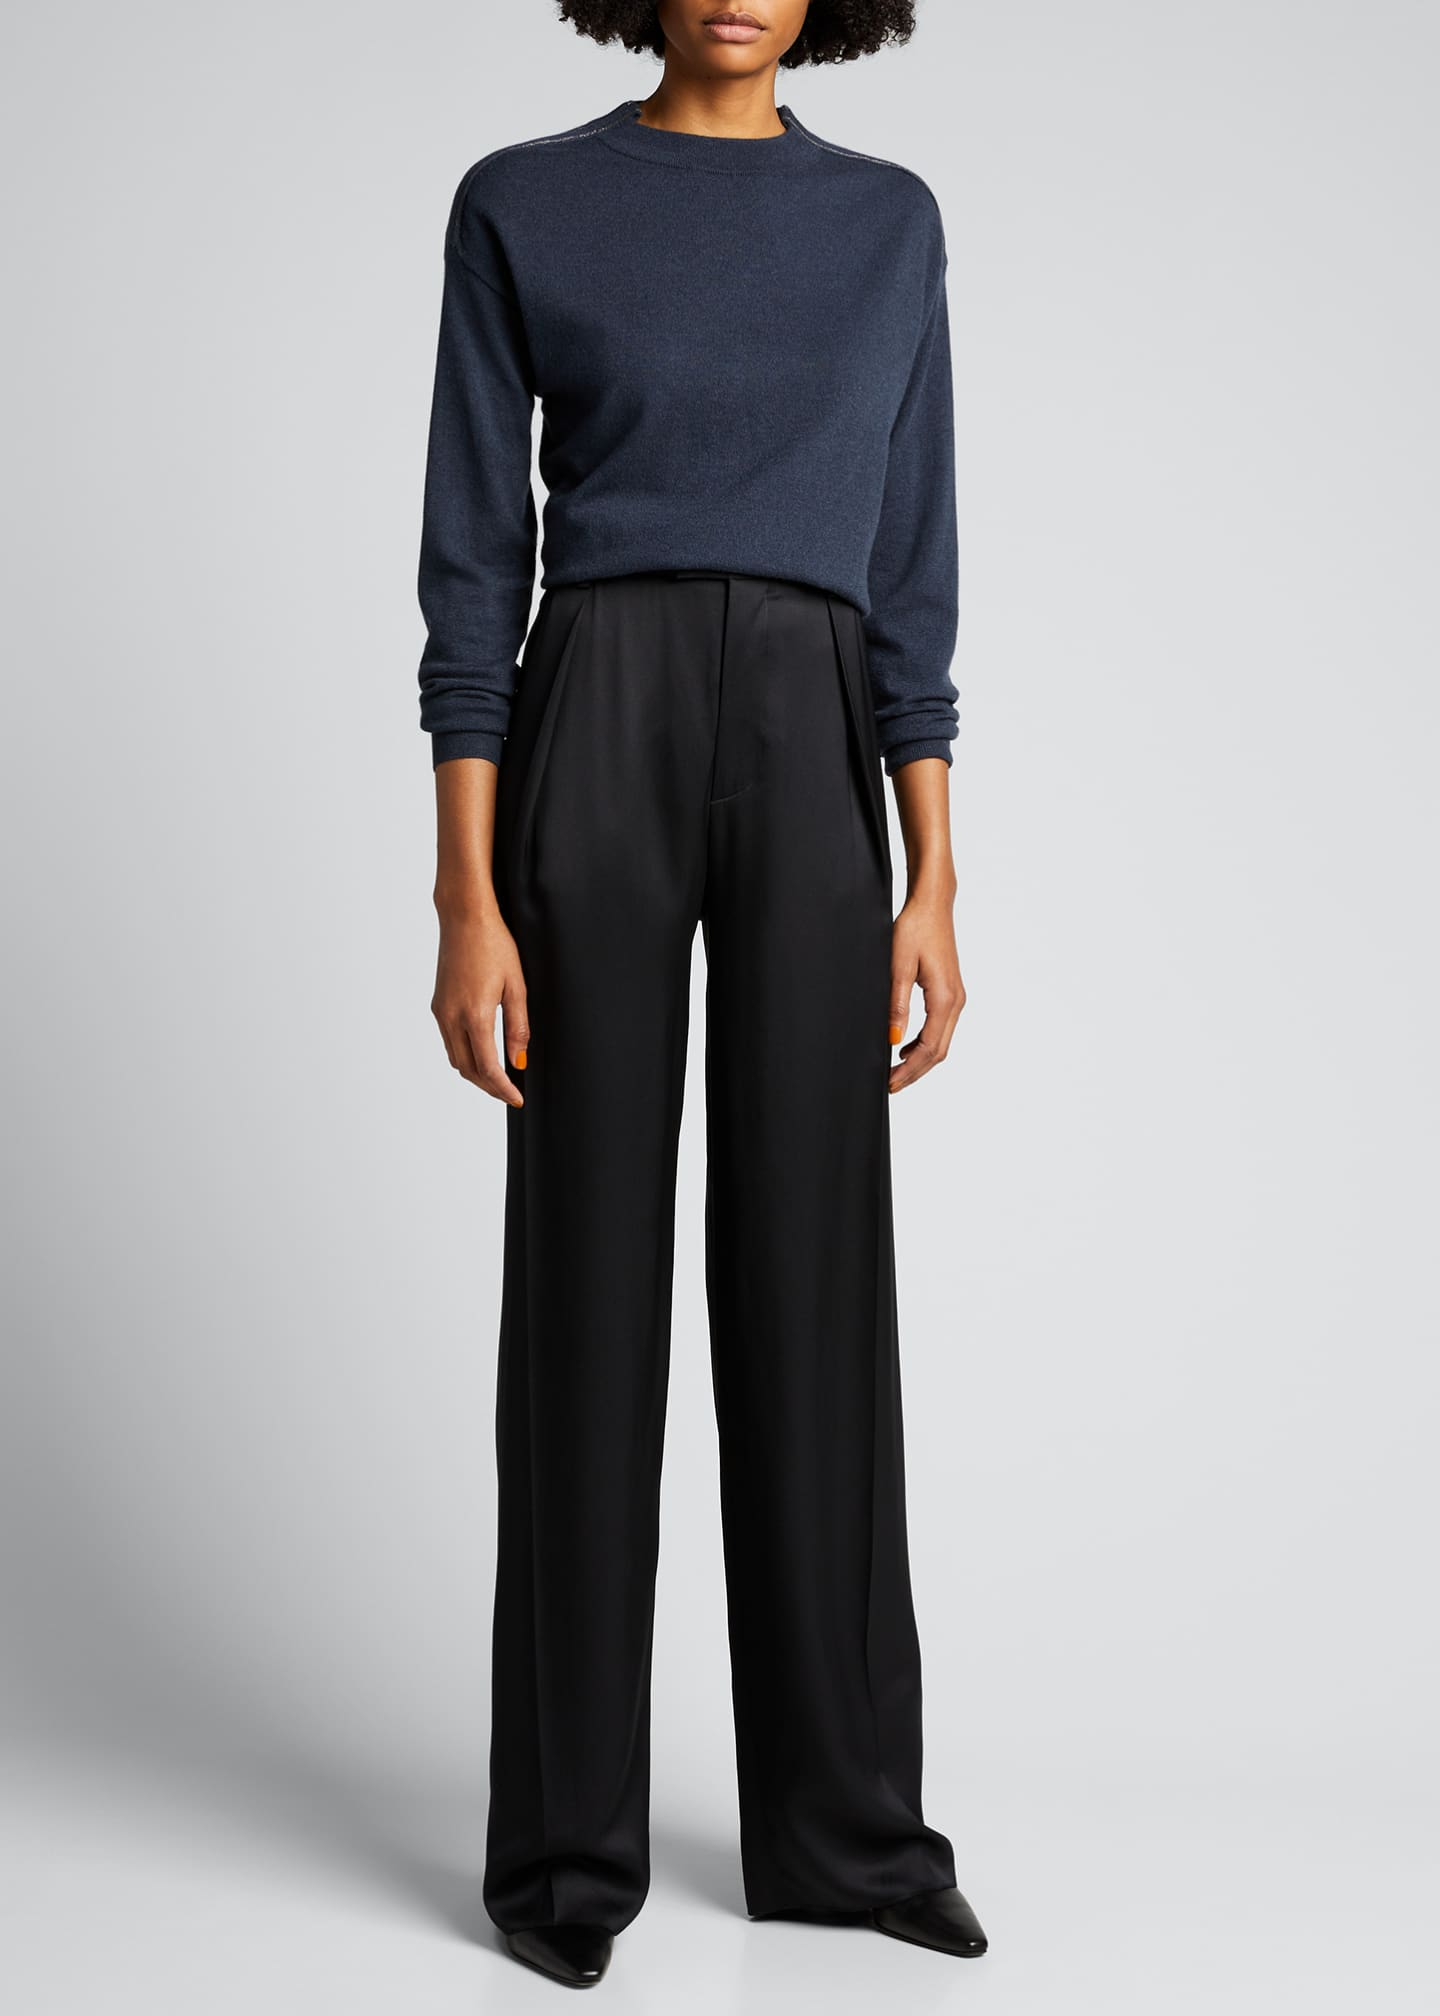 Image 1 of 5: Lightweight Cashmere Sweater with Monili Trim